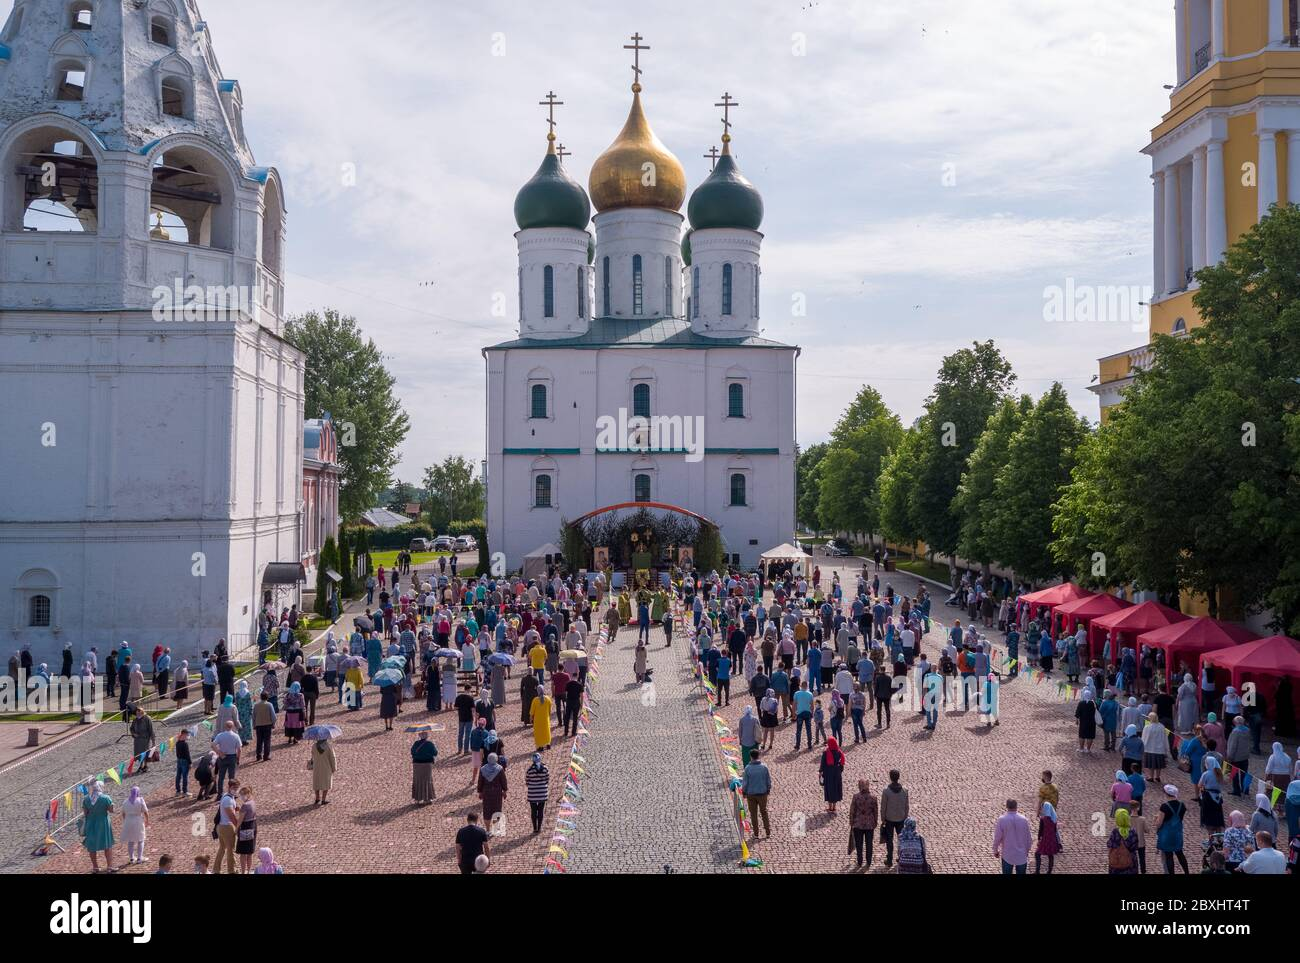 Kolomna, Moscow Region, Russia. 7th June, 2020. Believers observe social distancing in front of the Assumption Cathedral during a religious service. On 31 May 2020, the Moscow Region authorities allowed people to take part in outdoor religious services and visit churches outside service hours. Credit: Dmitry Serebryakov/TASS/Alamy Live News Stock Photo